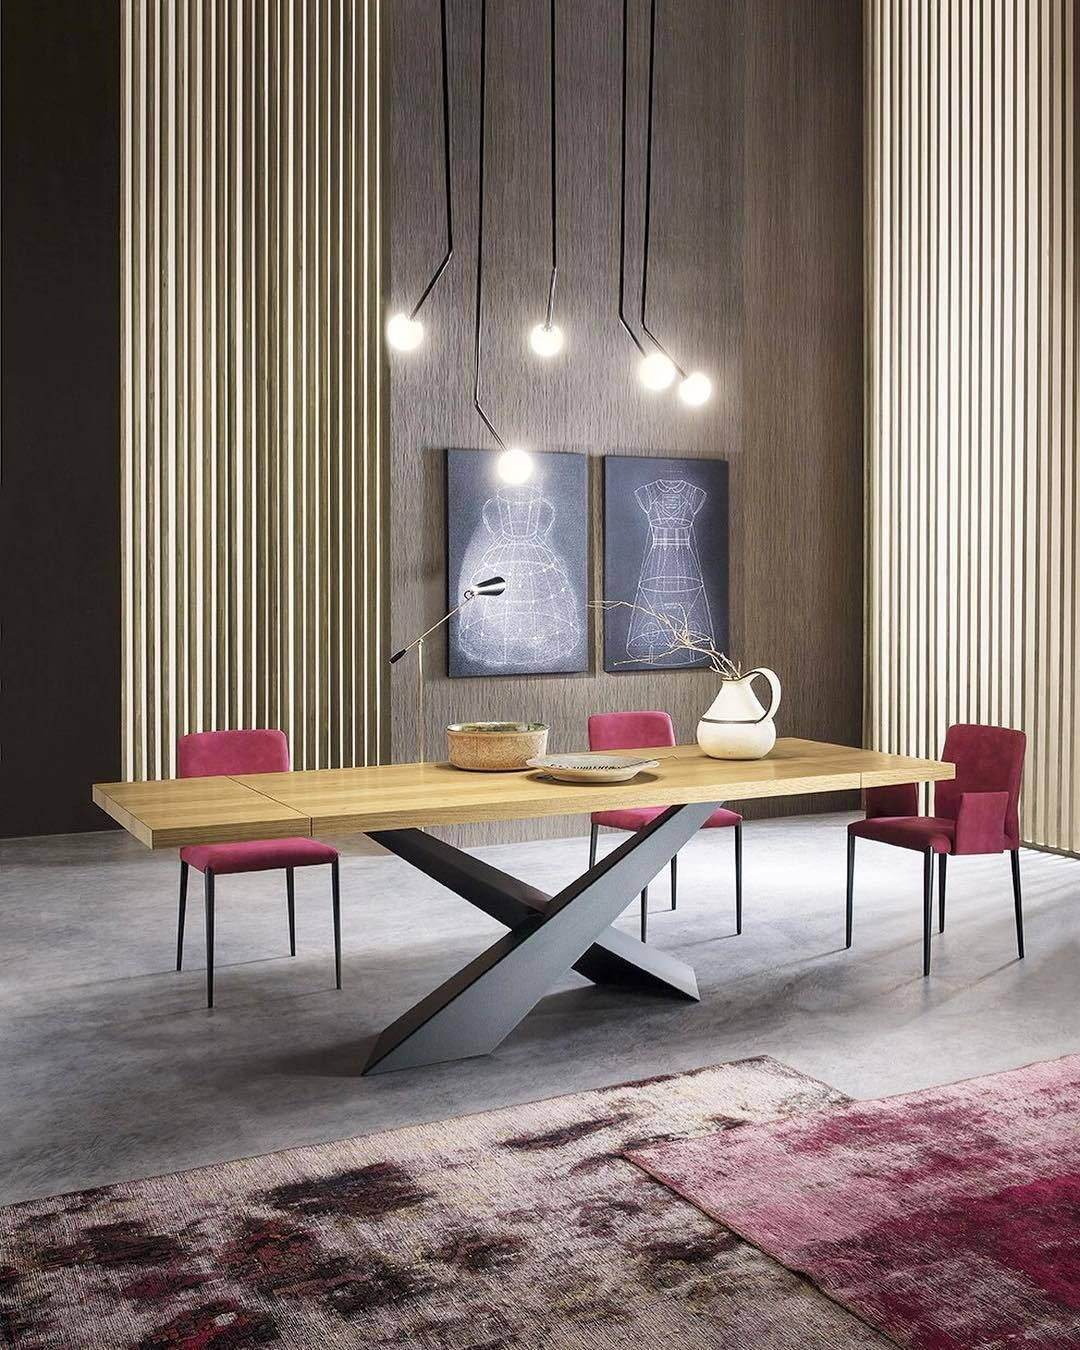 Table With Two Tilted Steel Legs Overlapped In Asymmetric Way